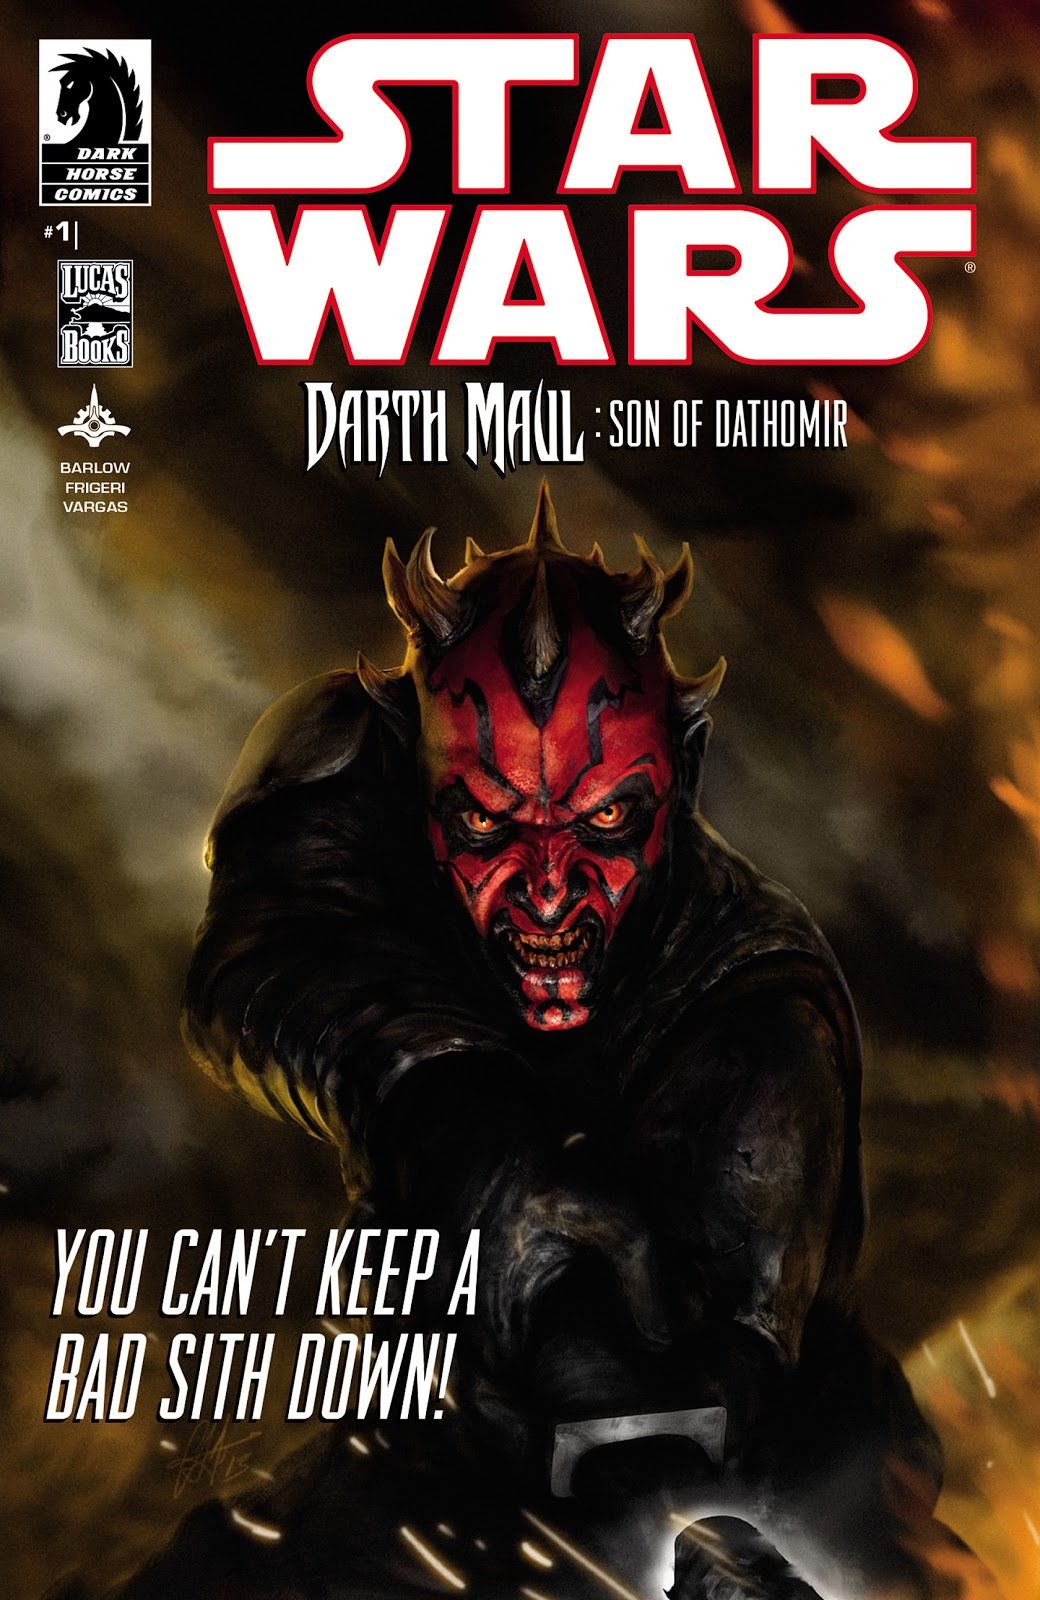 Outer Rim #5 – Star Wars Darth Maul Figlio di Dathomir